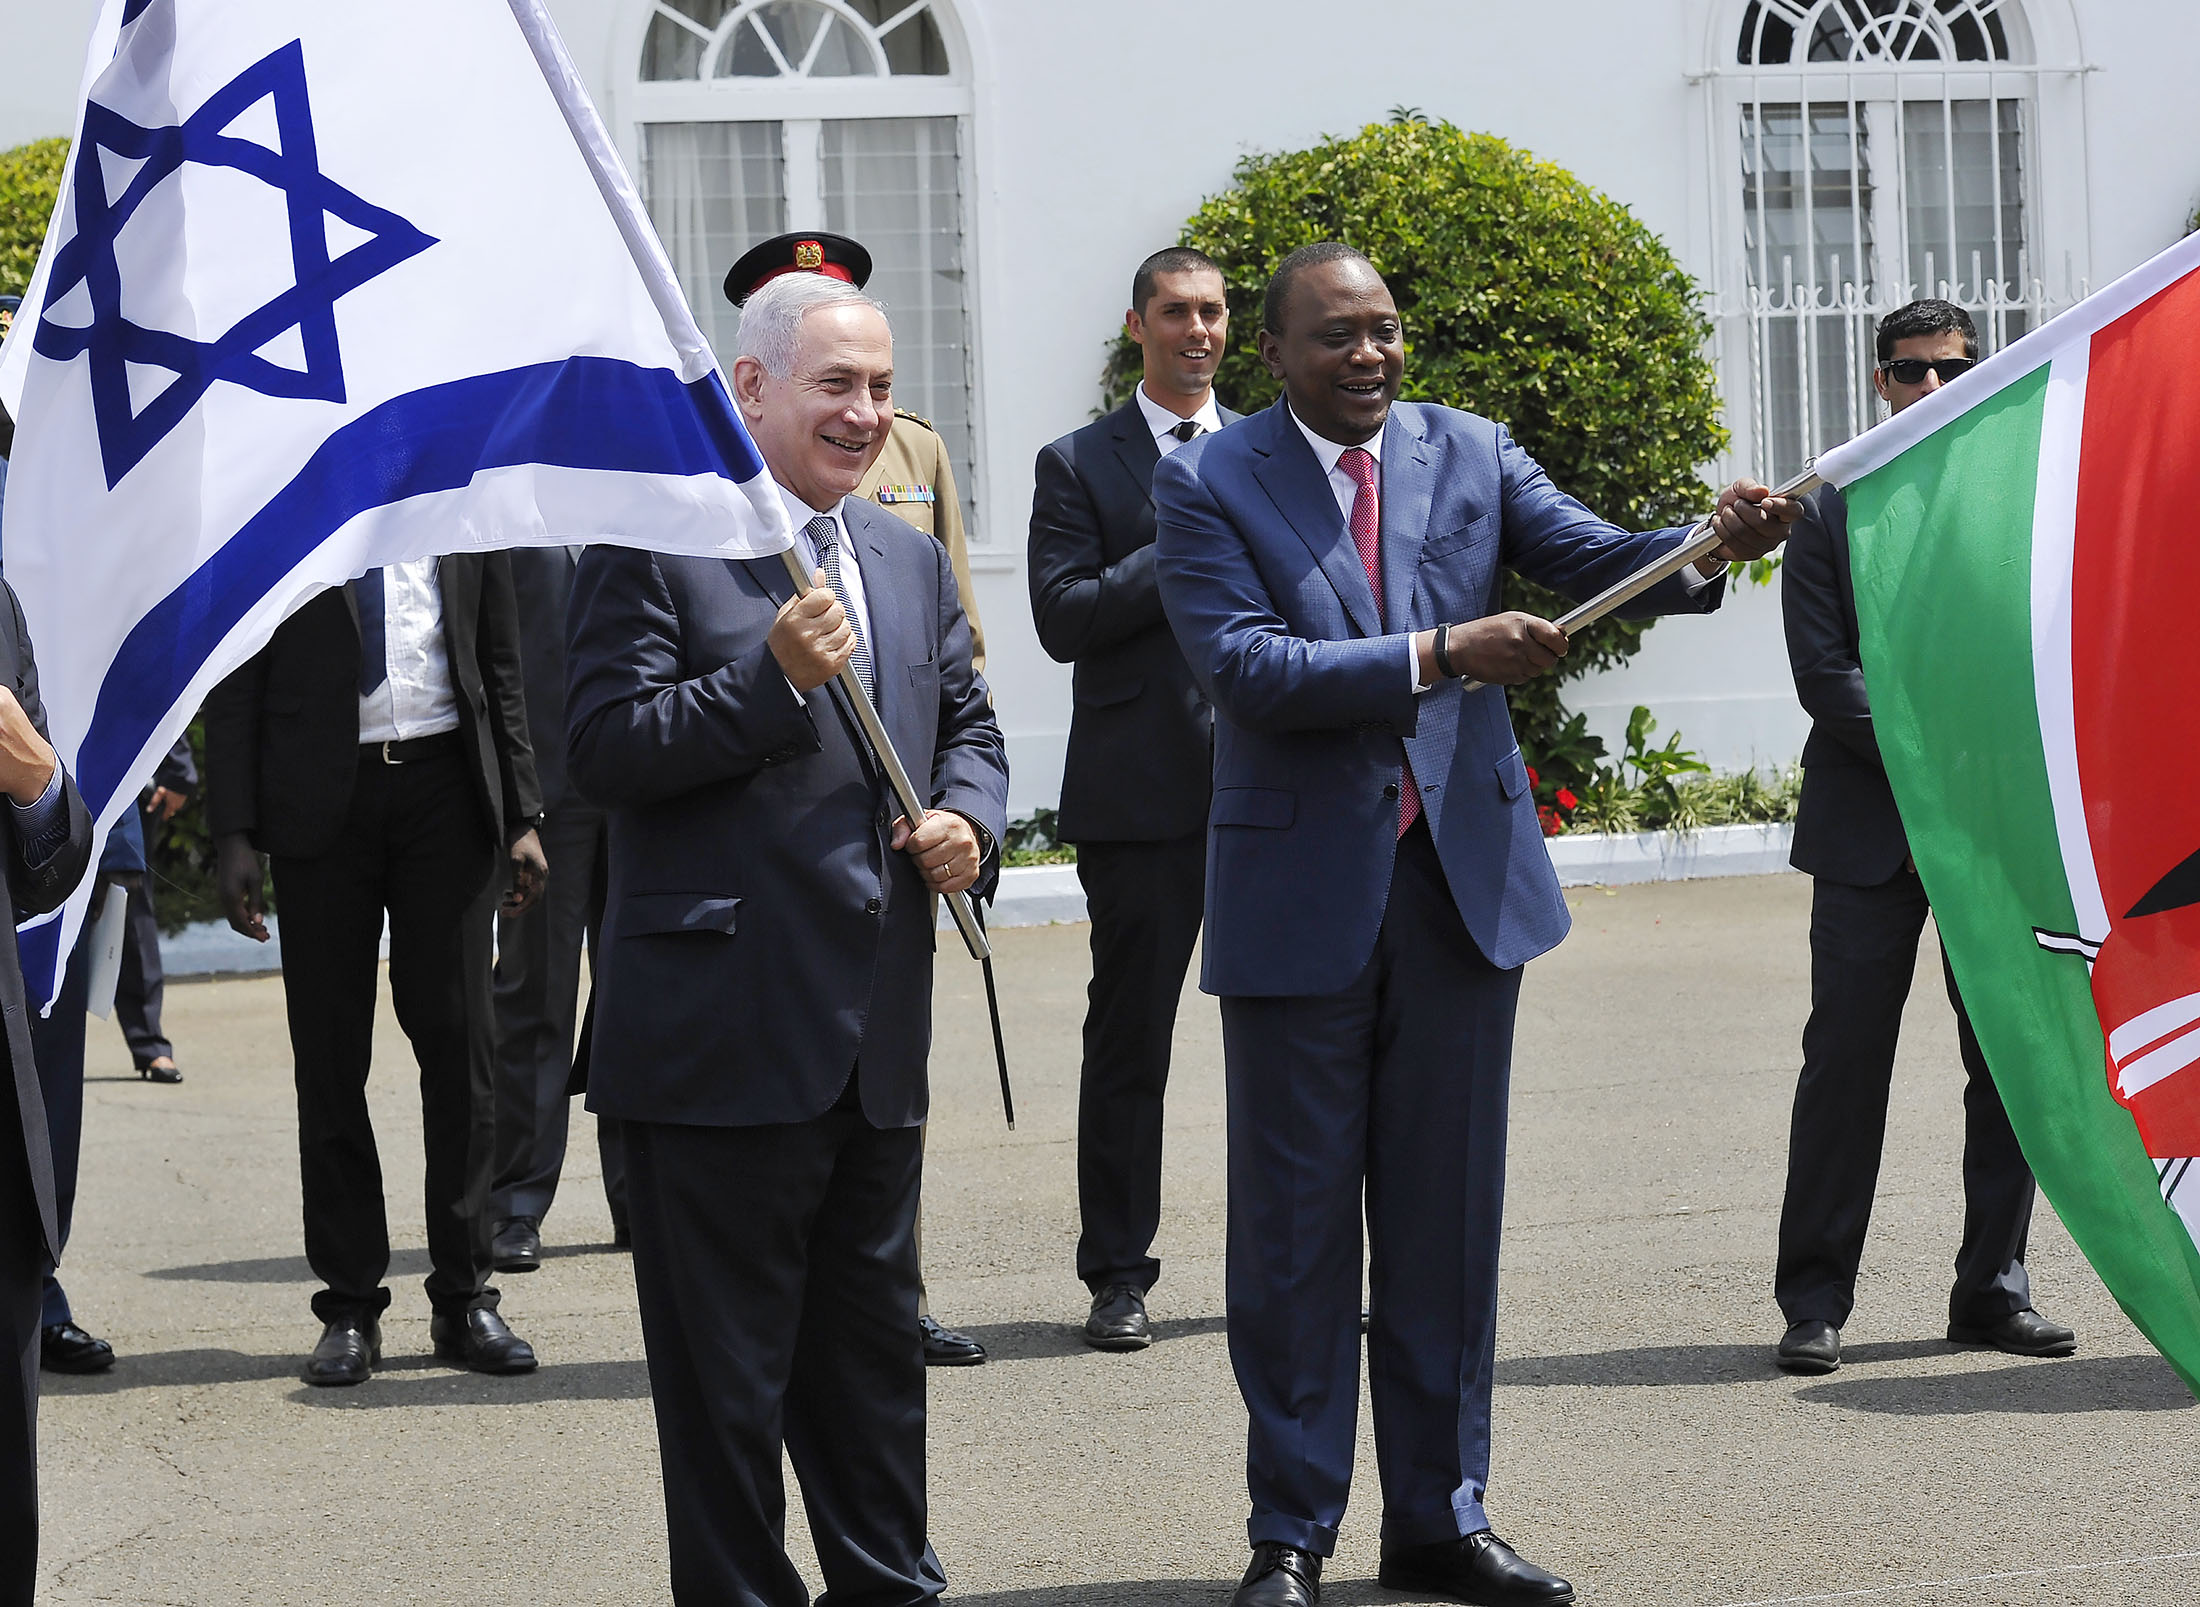 Out of Africa, Netanyahu Says He'll Expedite Business Deals